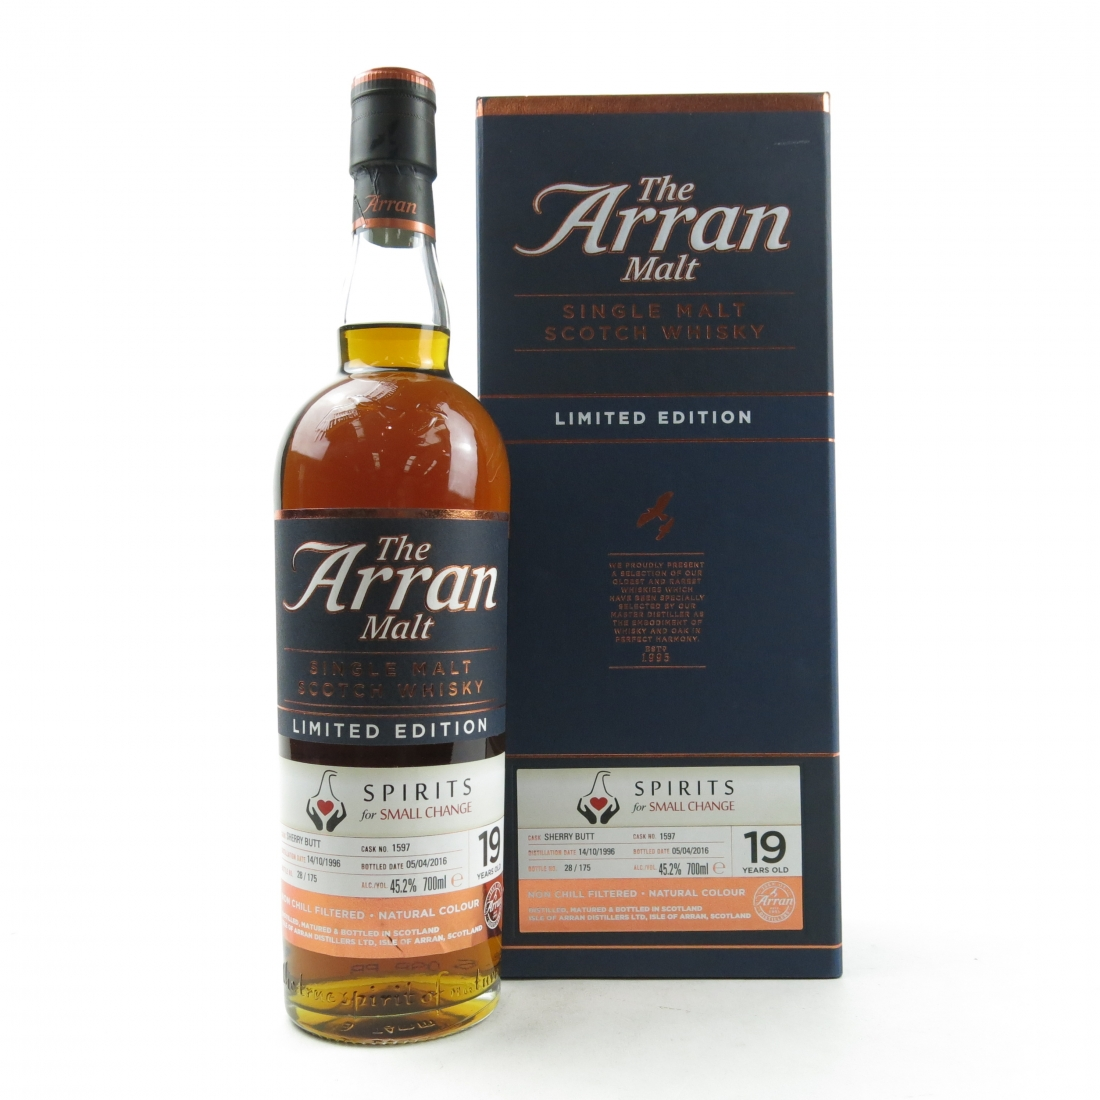 Arran 1996 Single Cask 19 Year Old / Spirits for Small Change